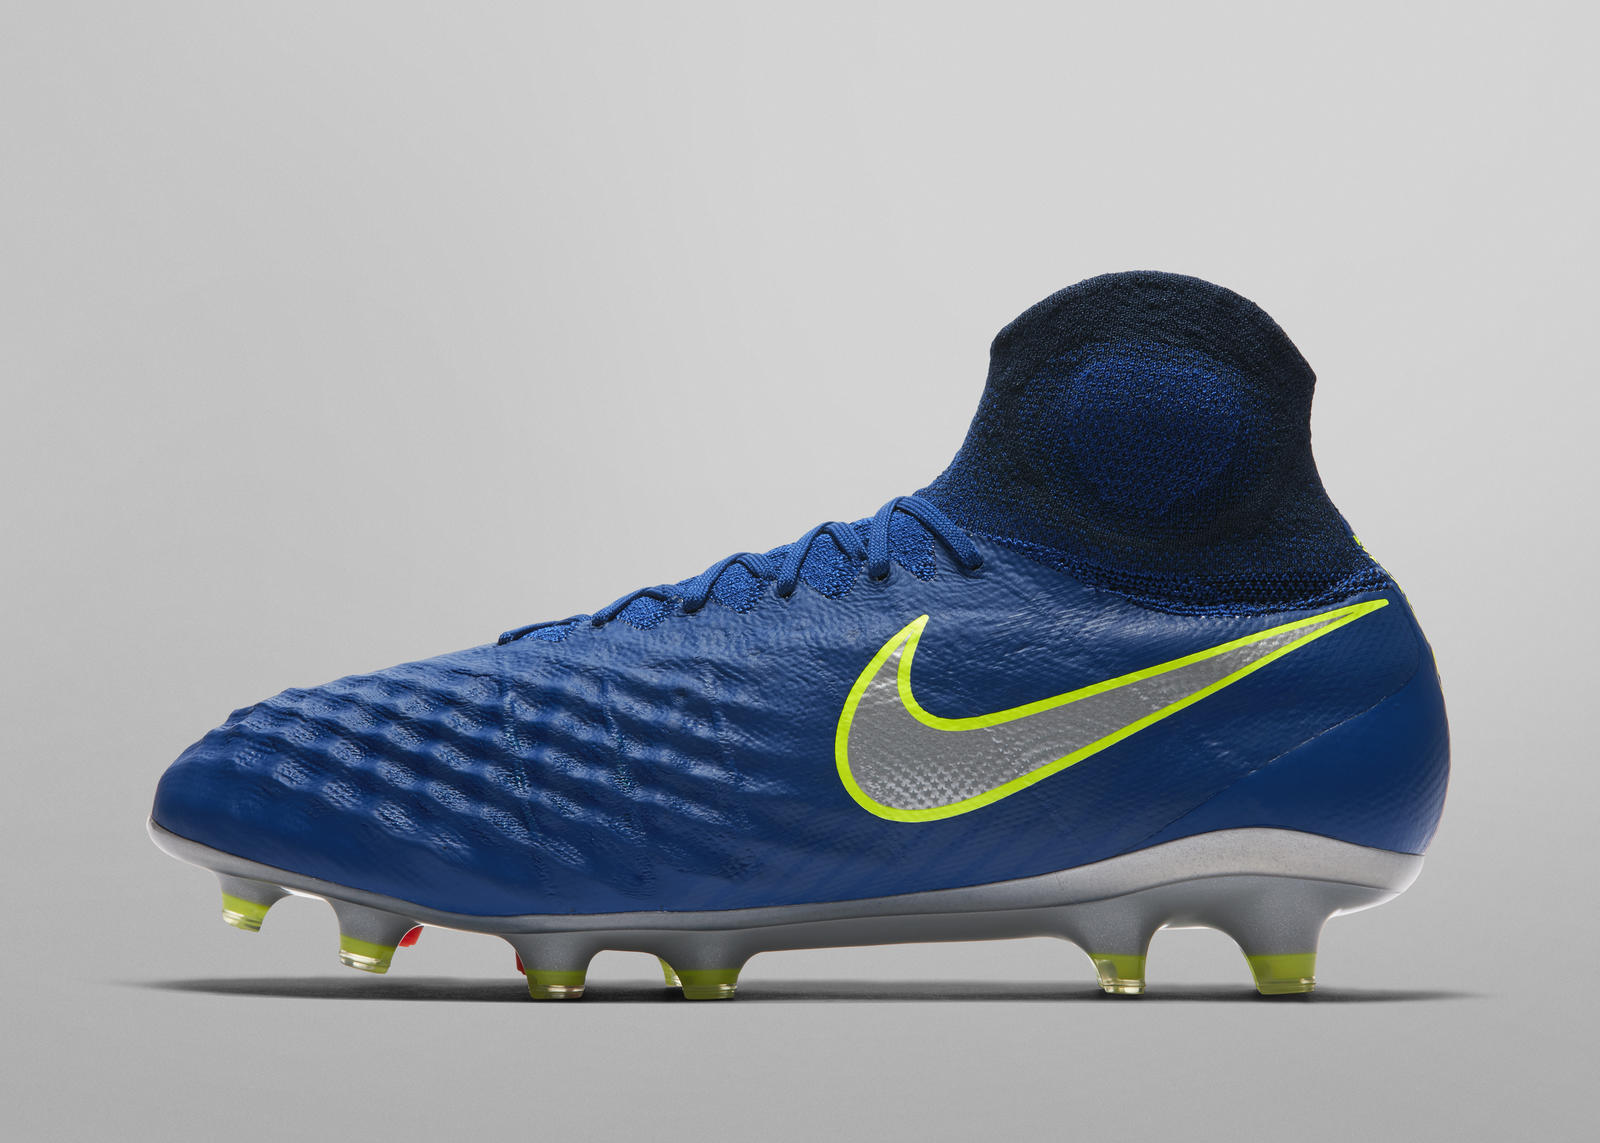 Su17 gfb time to shine pack 844595 409 magista obra df fg 2 11 rectangle 1600